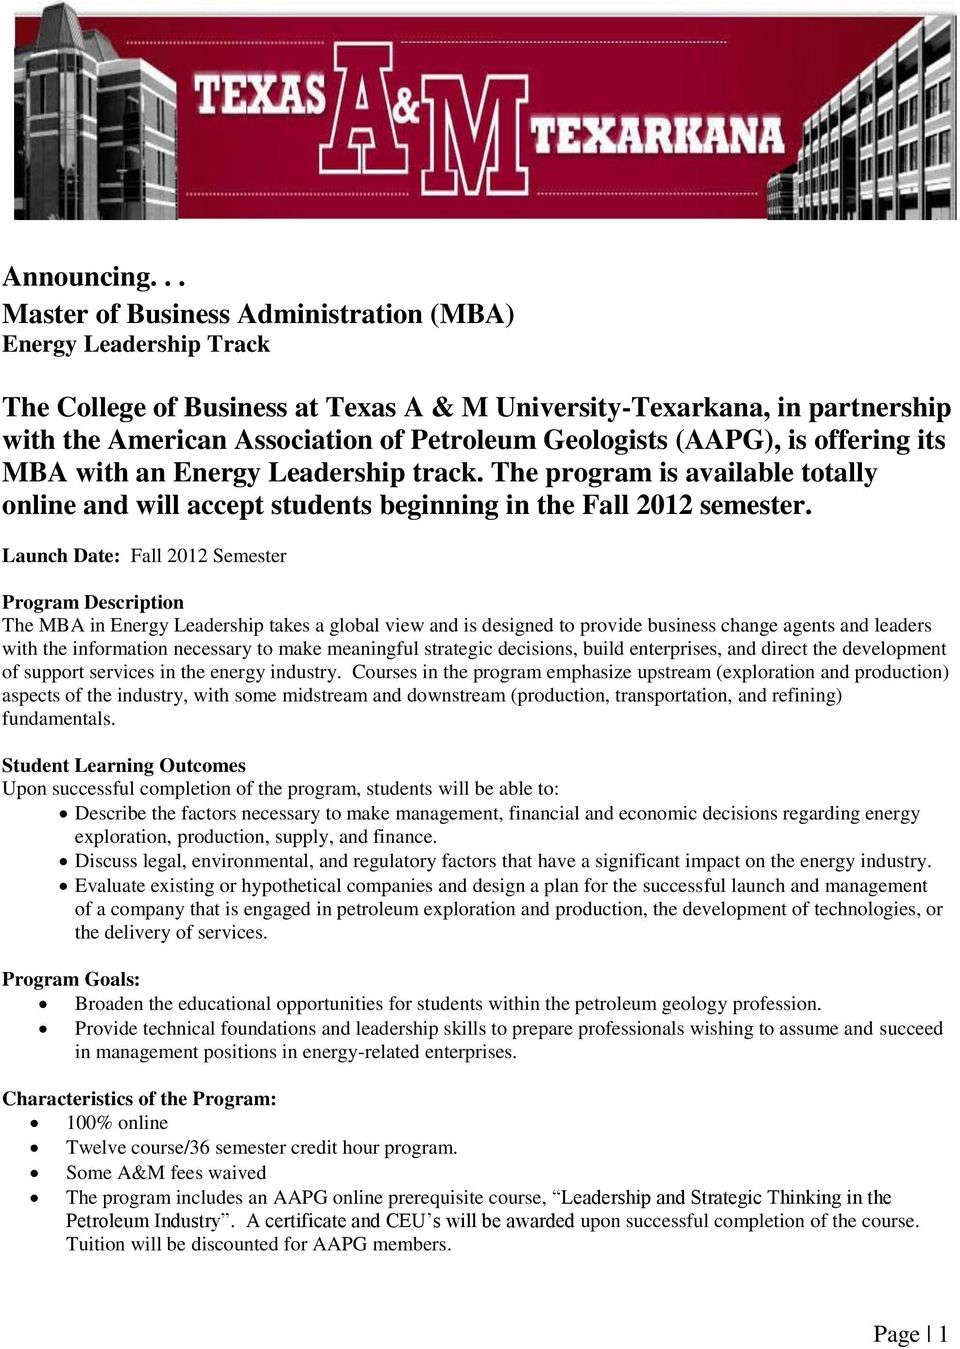 (AAPG), is offering its MBA with an Energy Leadership track. The program is available totally online and will accept students beginning in the Fall 2012 semester.